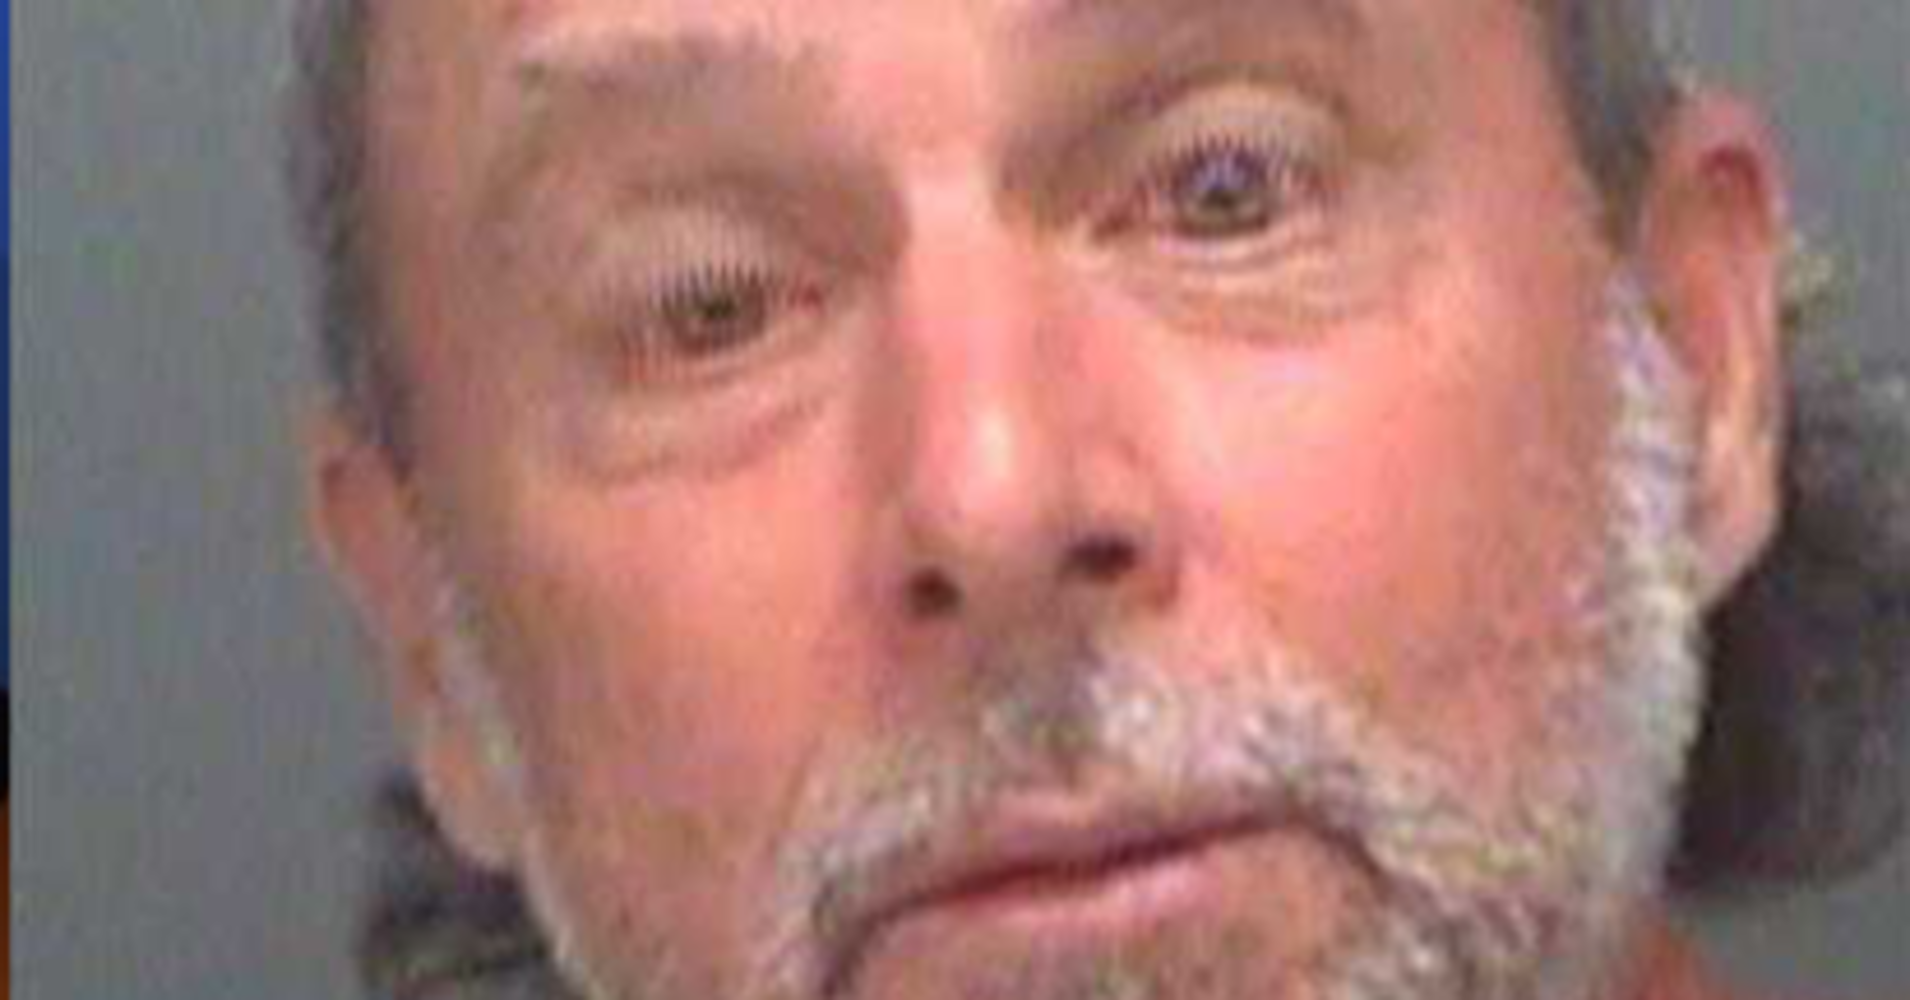 Author Of 'Alcoholic's Guide to Adventure' Arrested After Drunken 911 Call